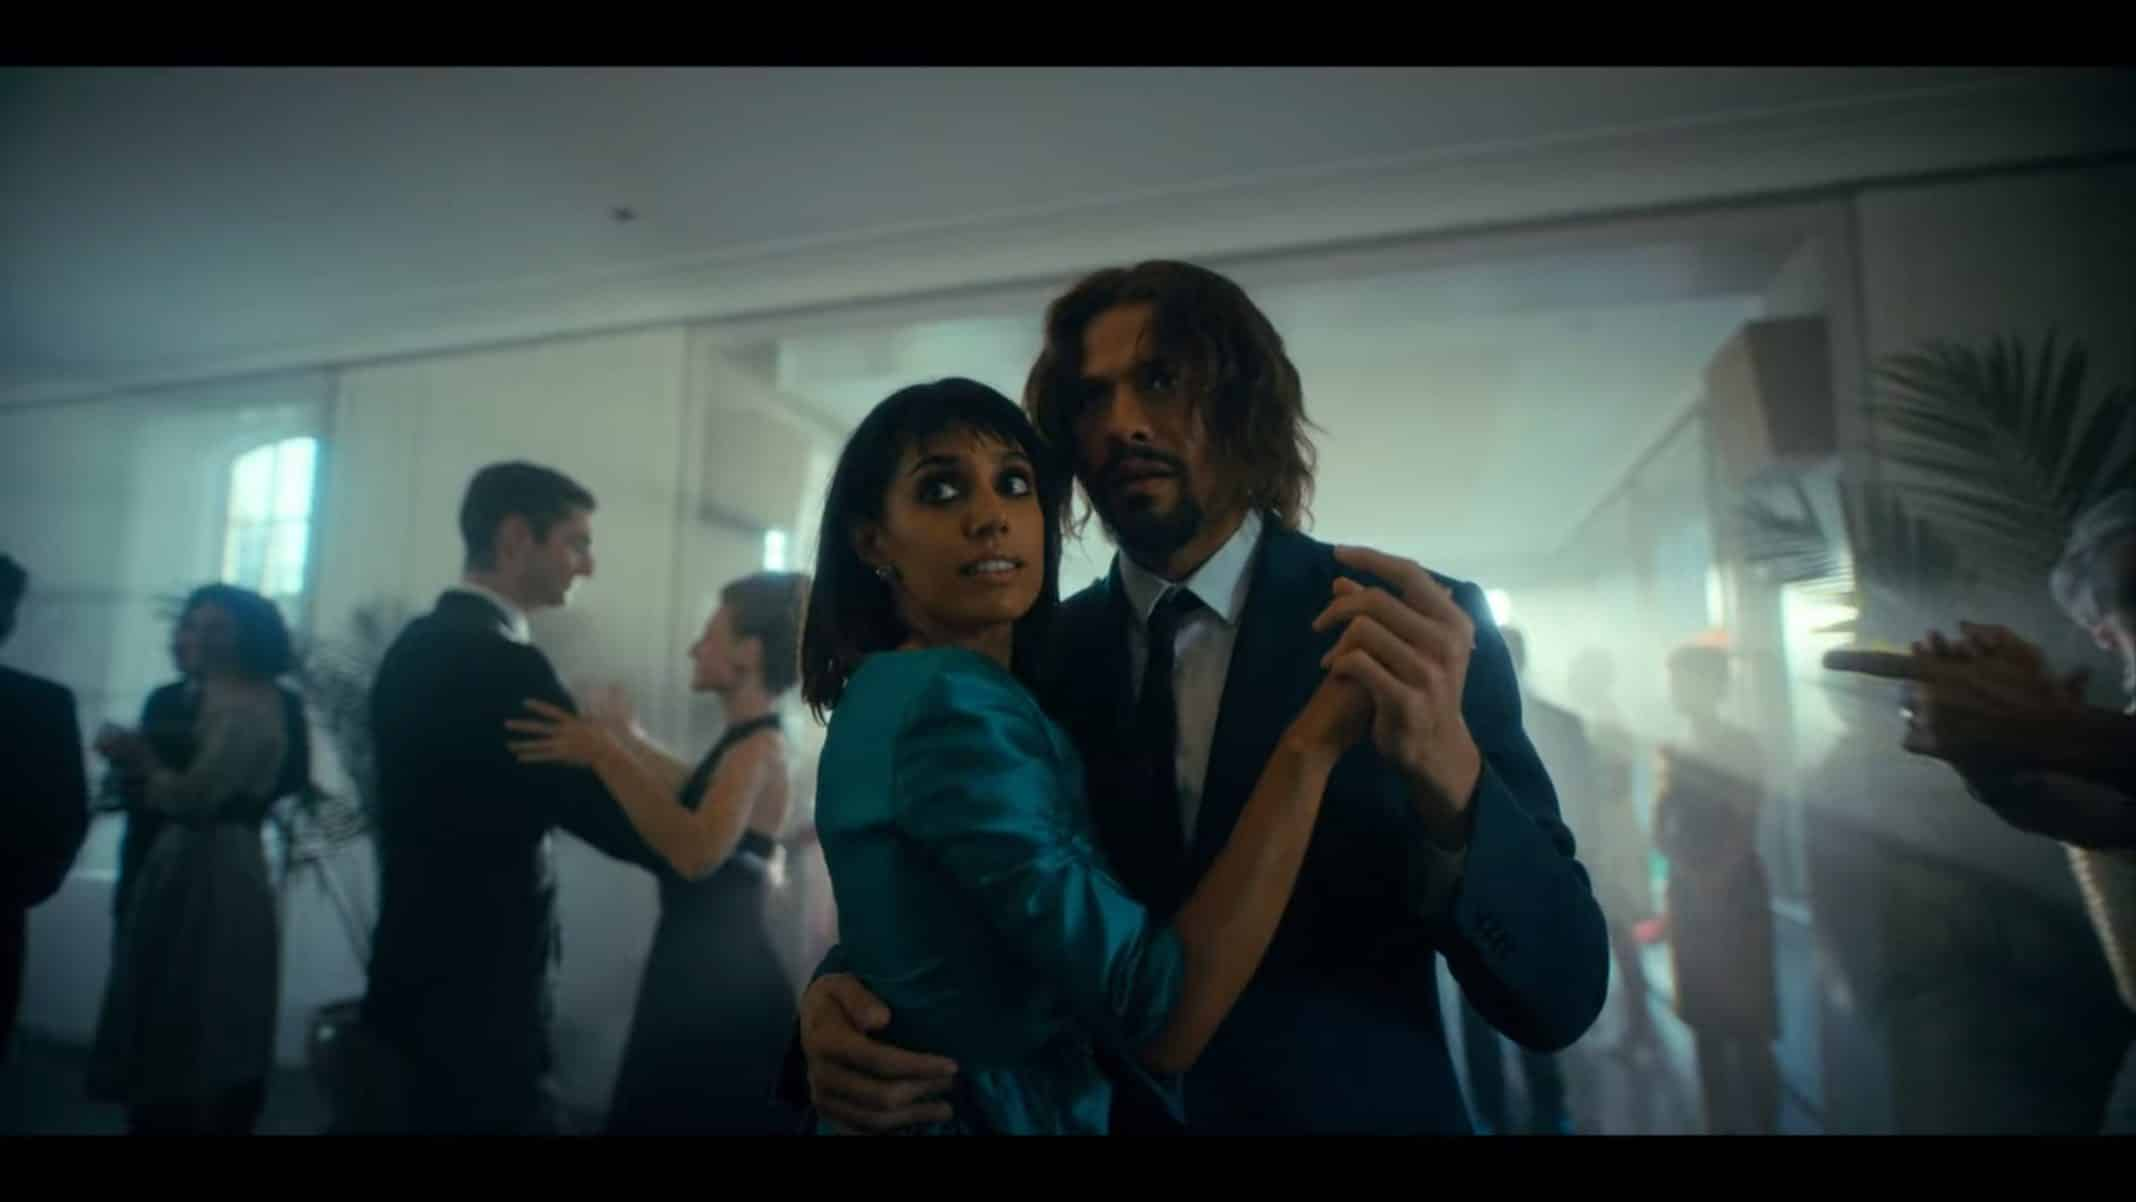 Lila and Diego dancing.